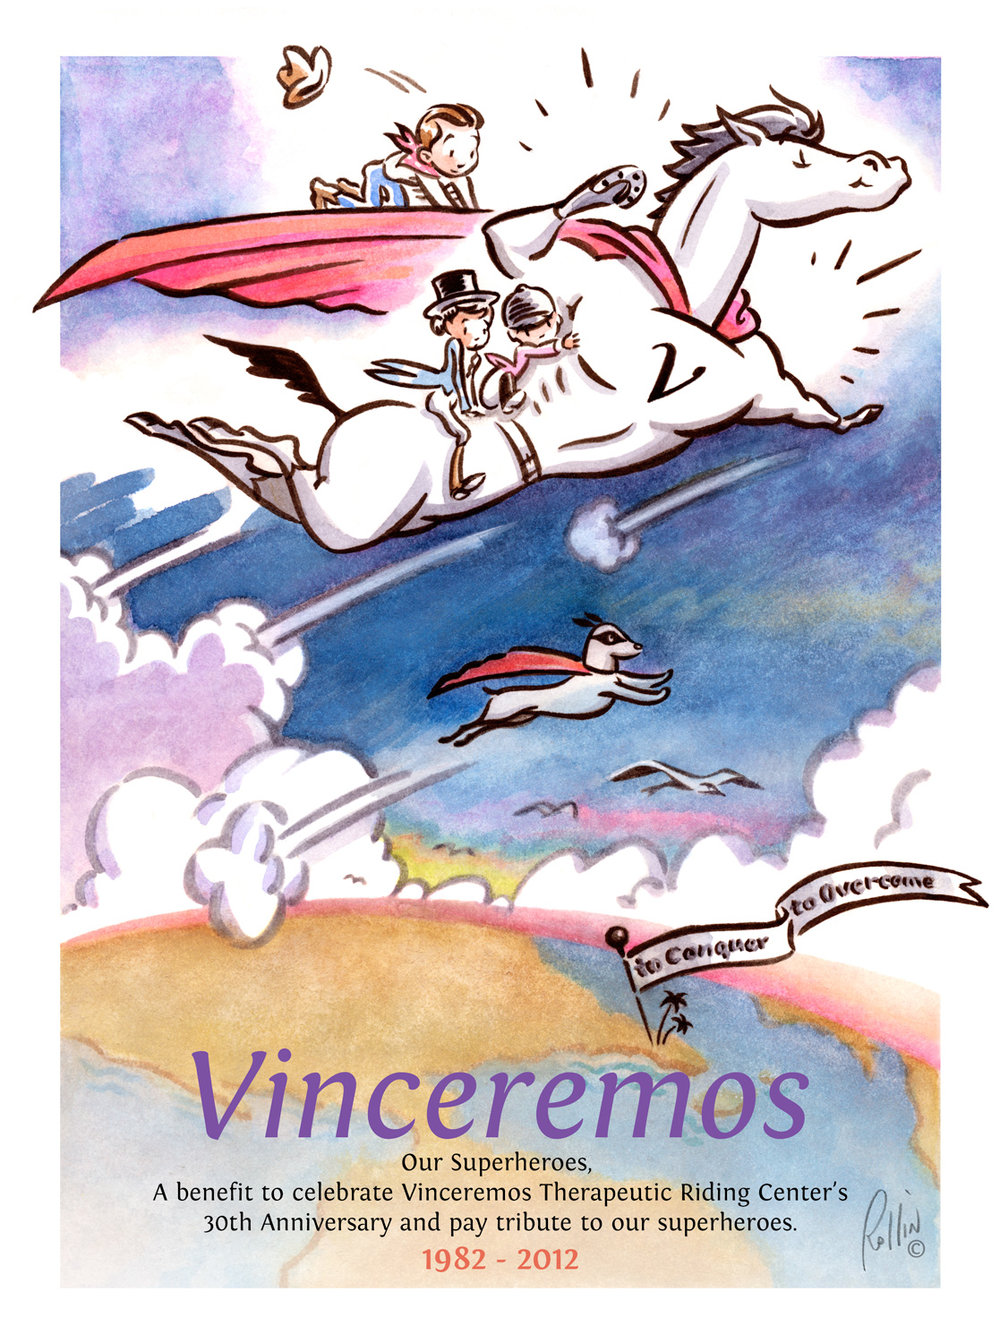 Vinceremos Therapeutic Riding Center